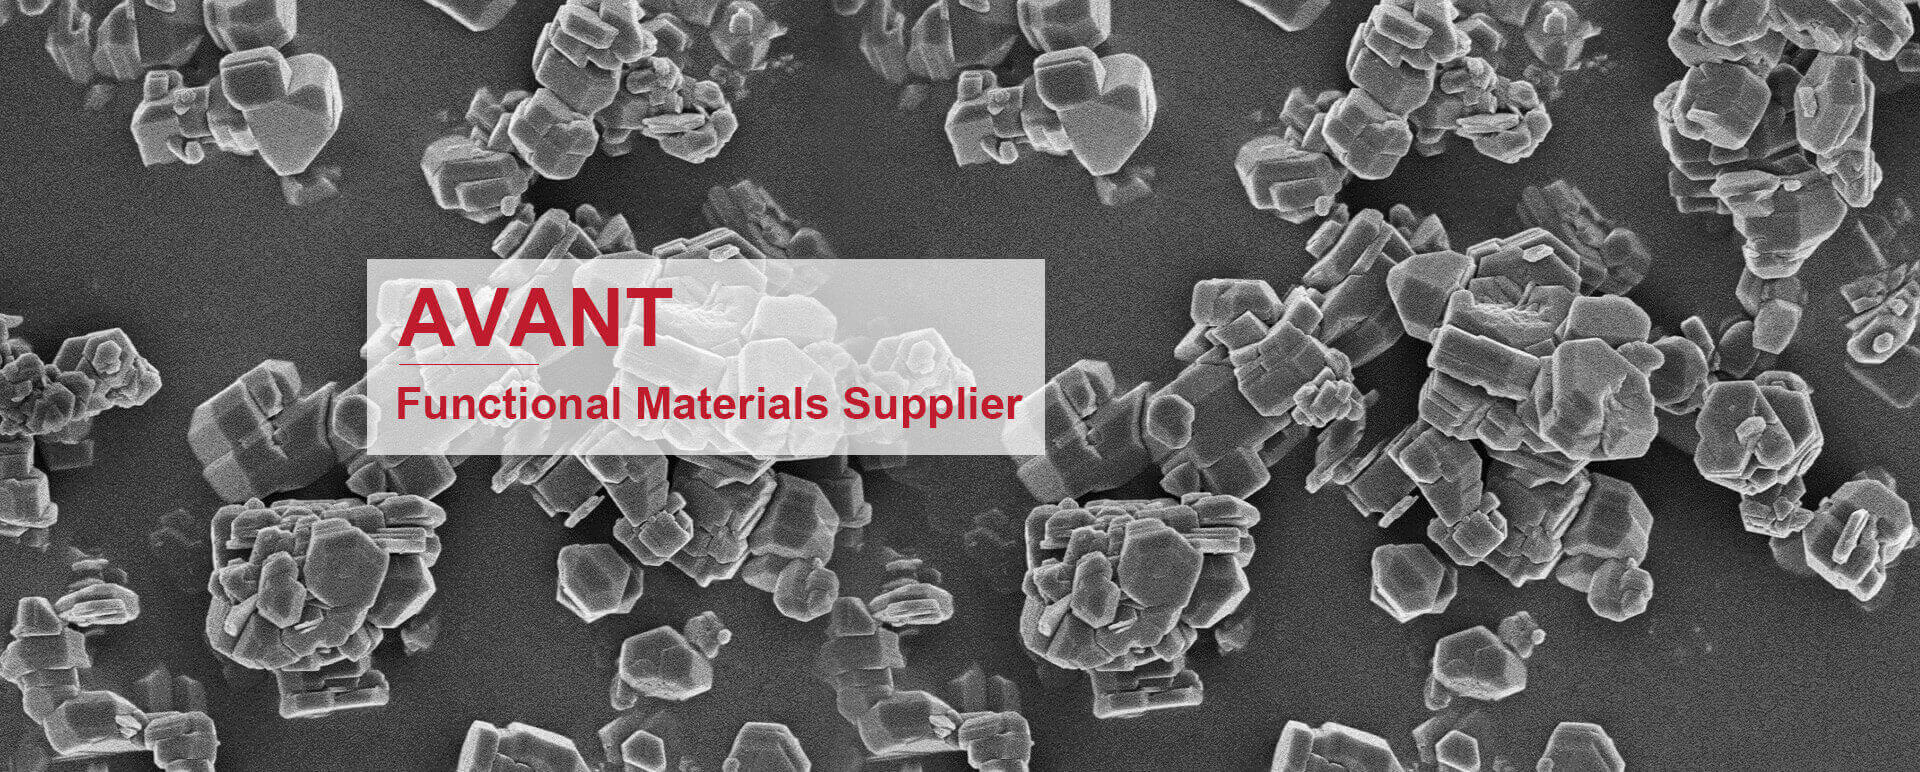 Avant Engineered Materials Supplier